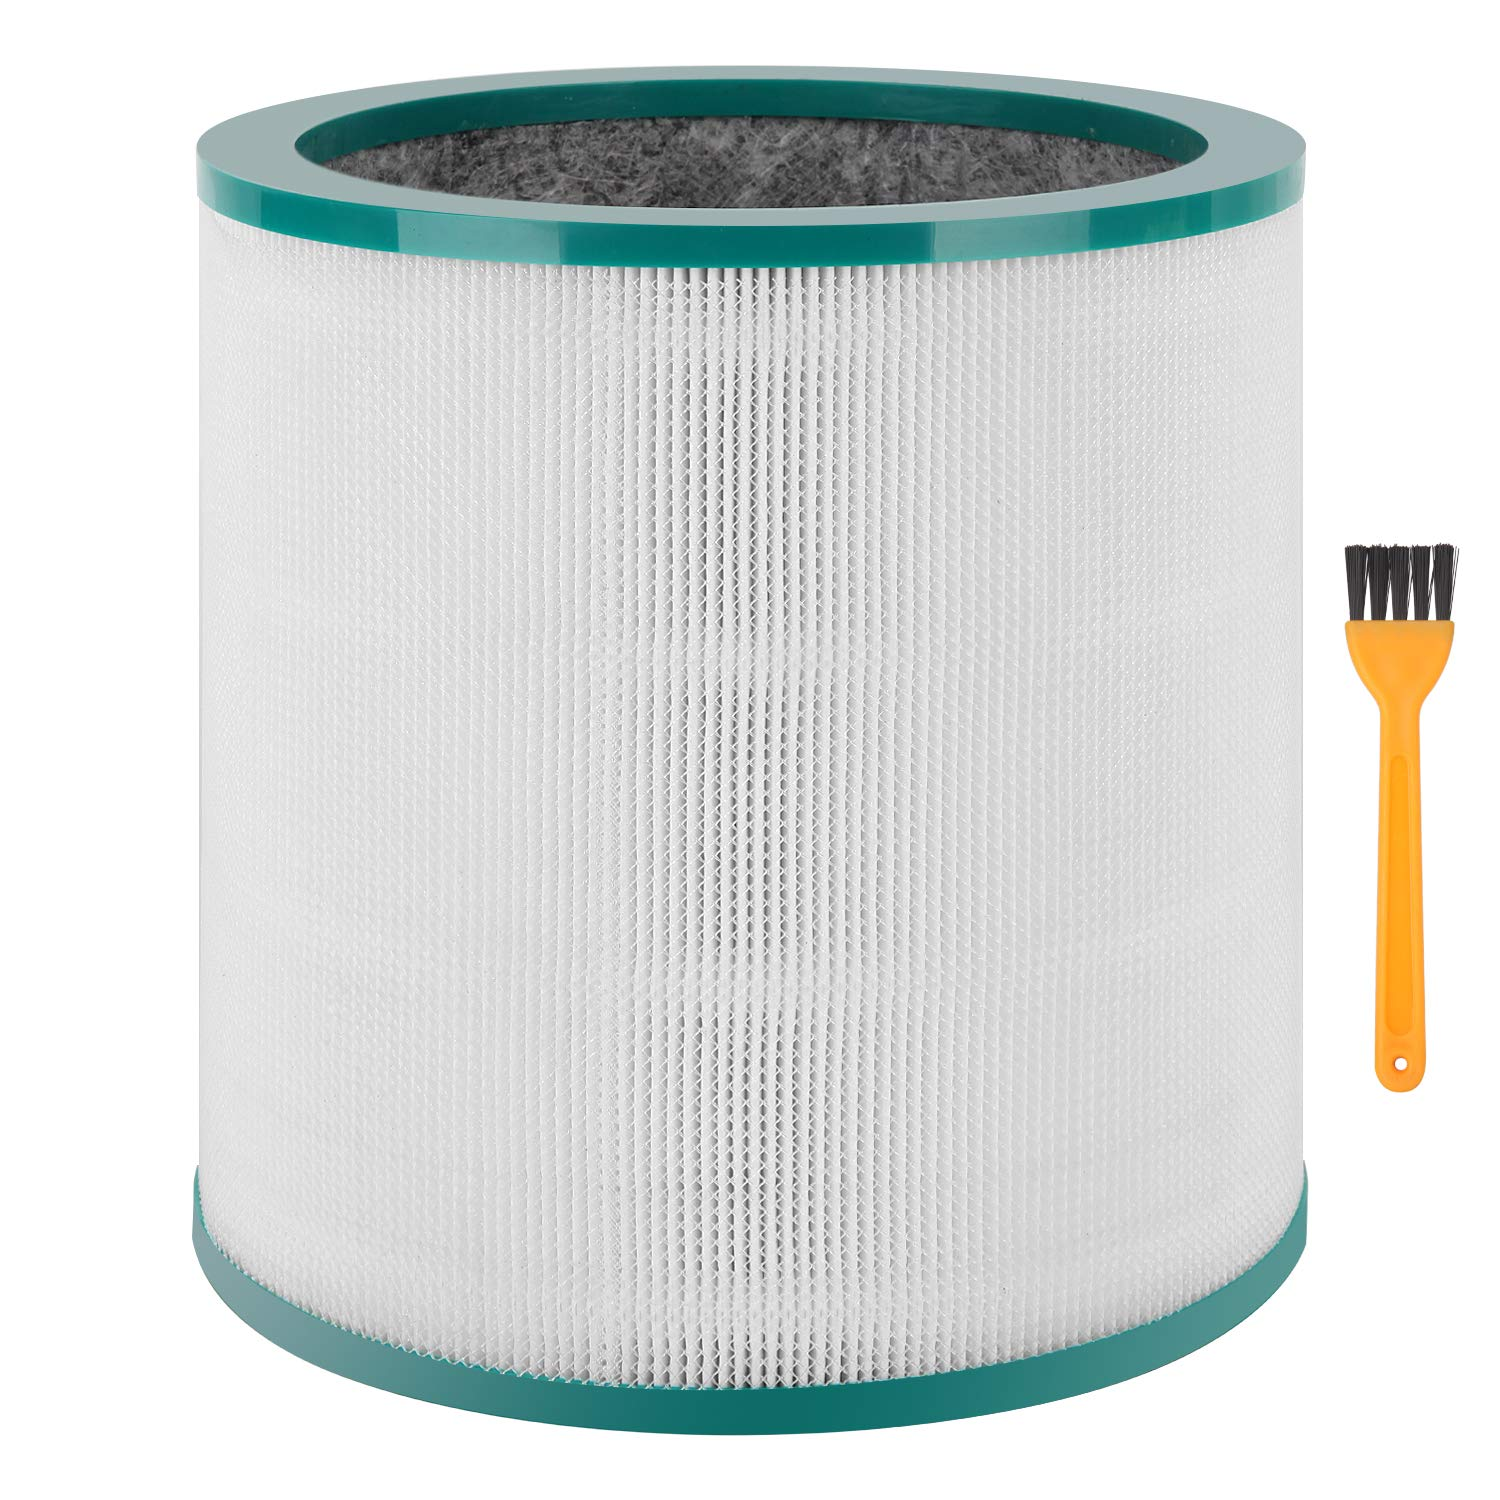 Colorfullife Replacement Air Purifier Filter for Dyson Tower Purifier Pure Cool Link TP02, TP03, Compare to Part # 968126-03